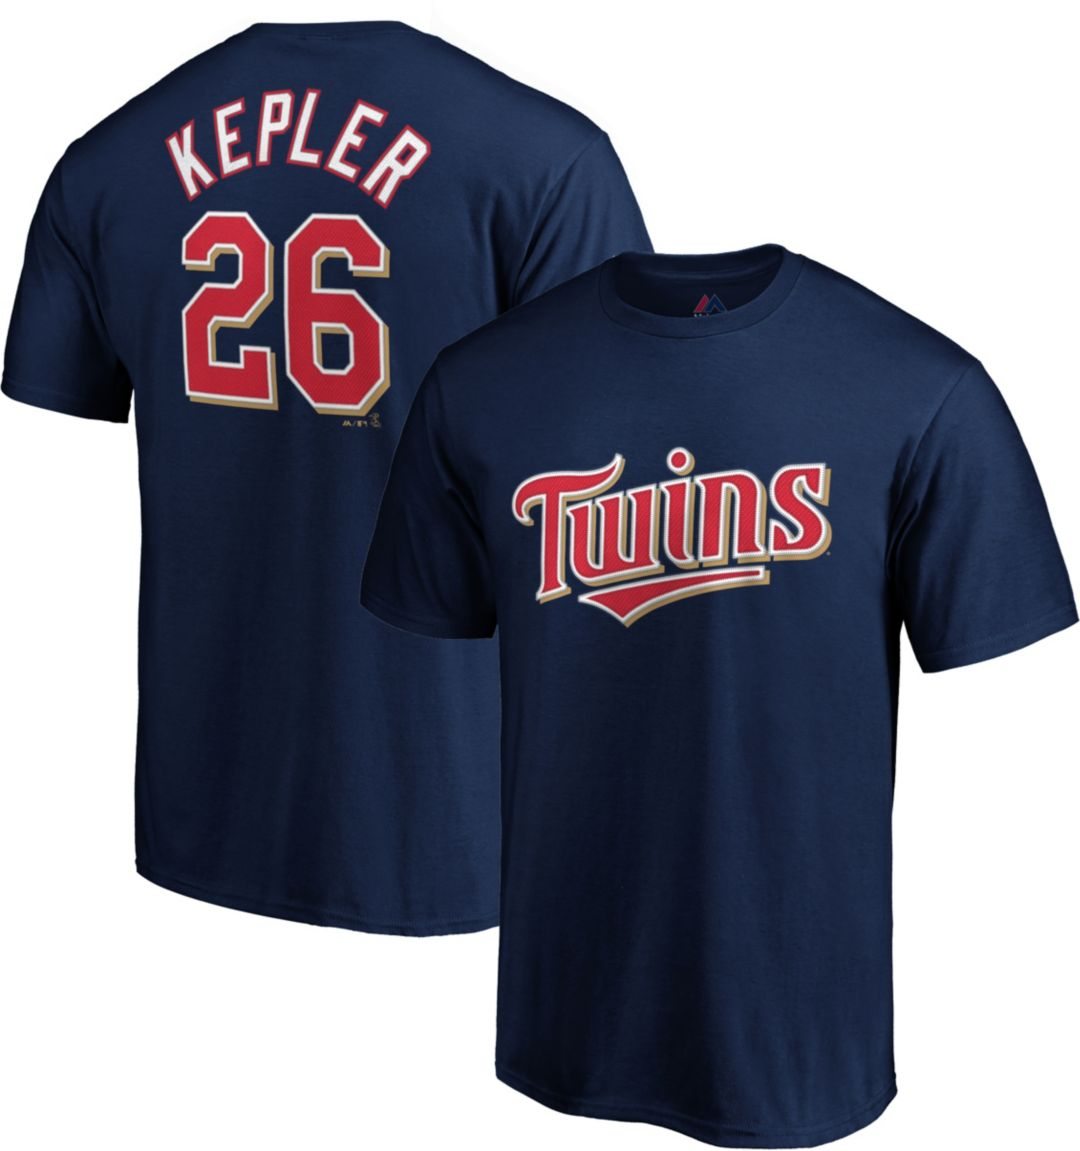 buy online 0d491 d900a Majestic Youth Minnesota Twins Max Kepler #26 Navy T-Shirt